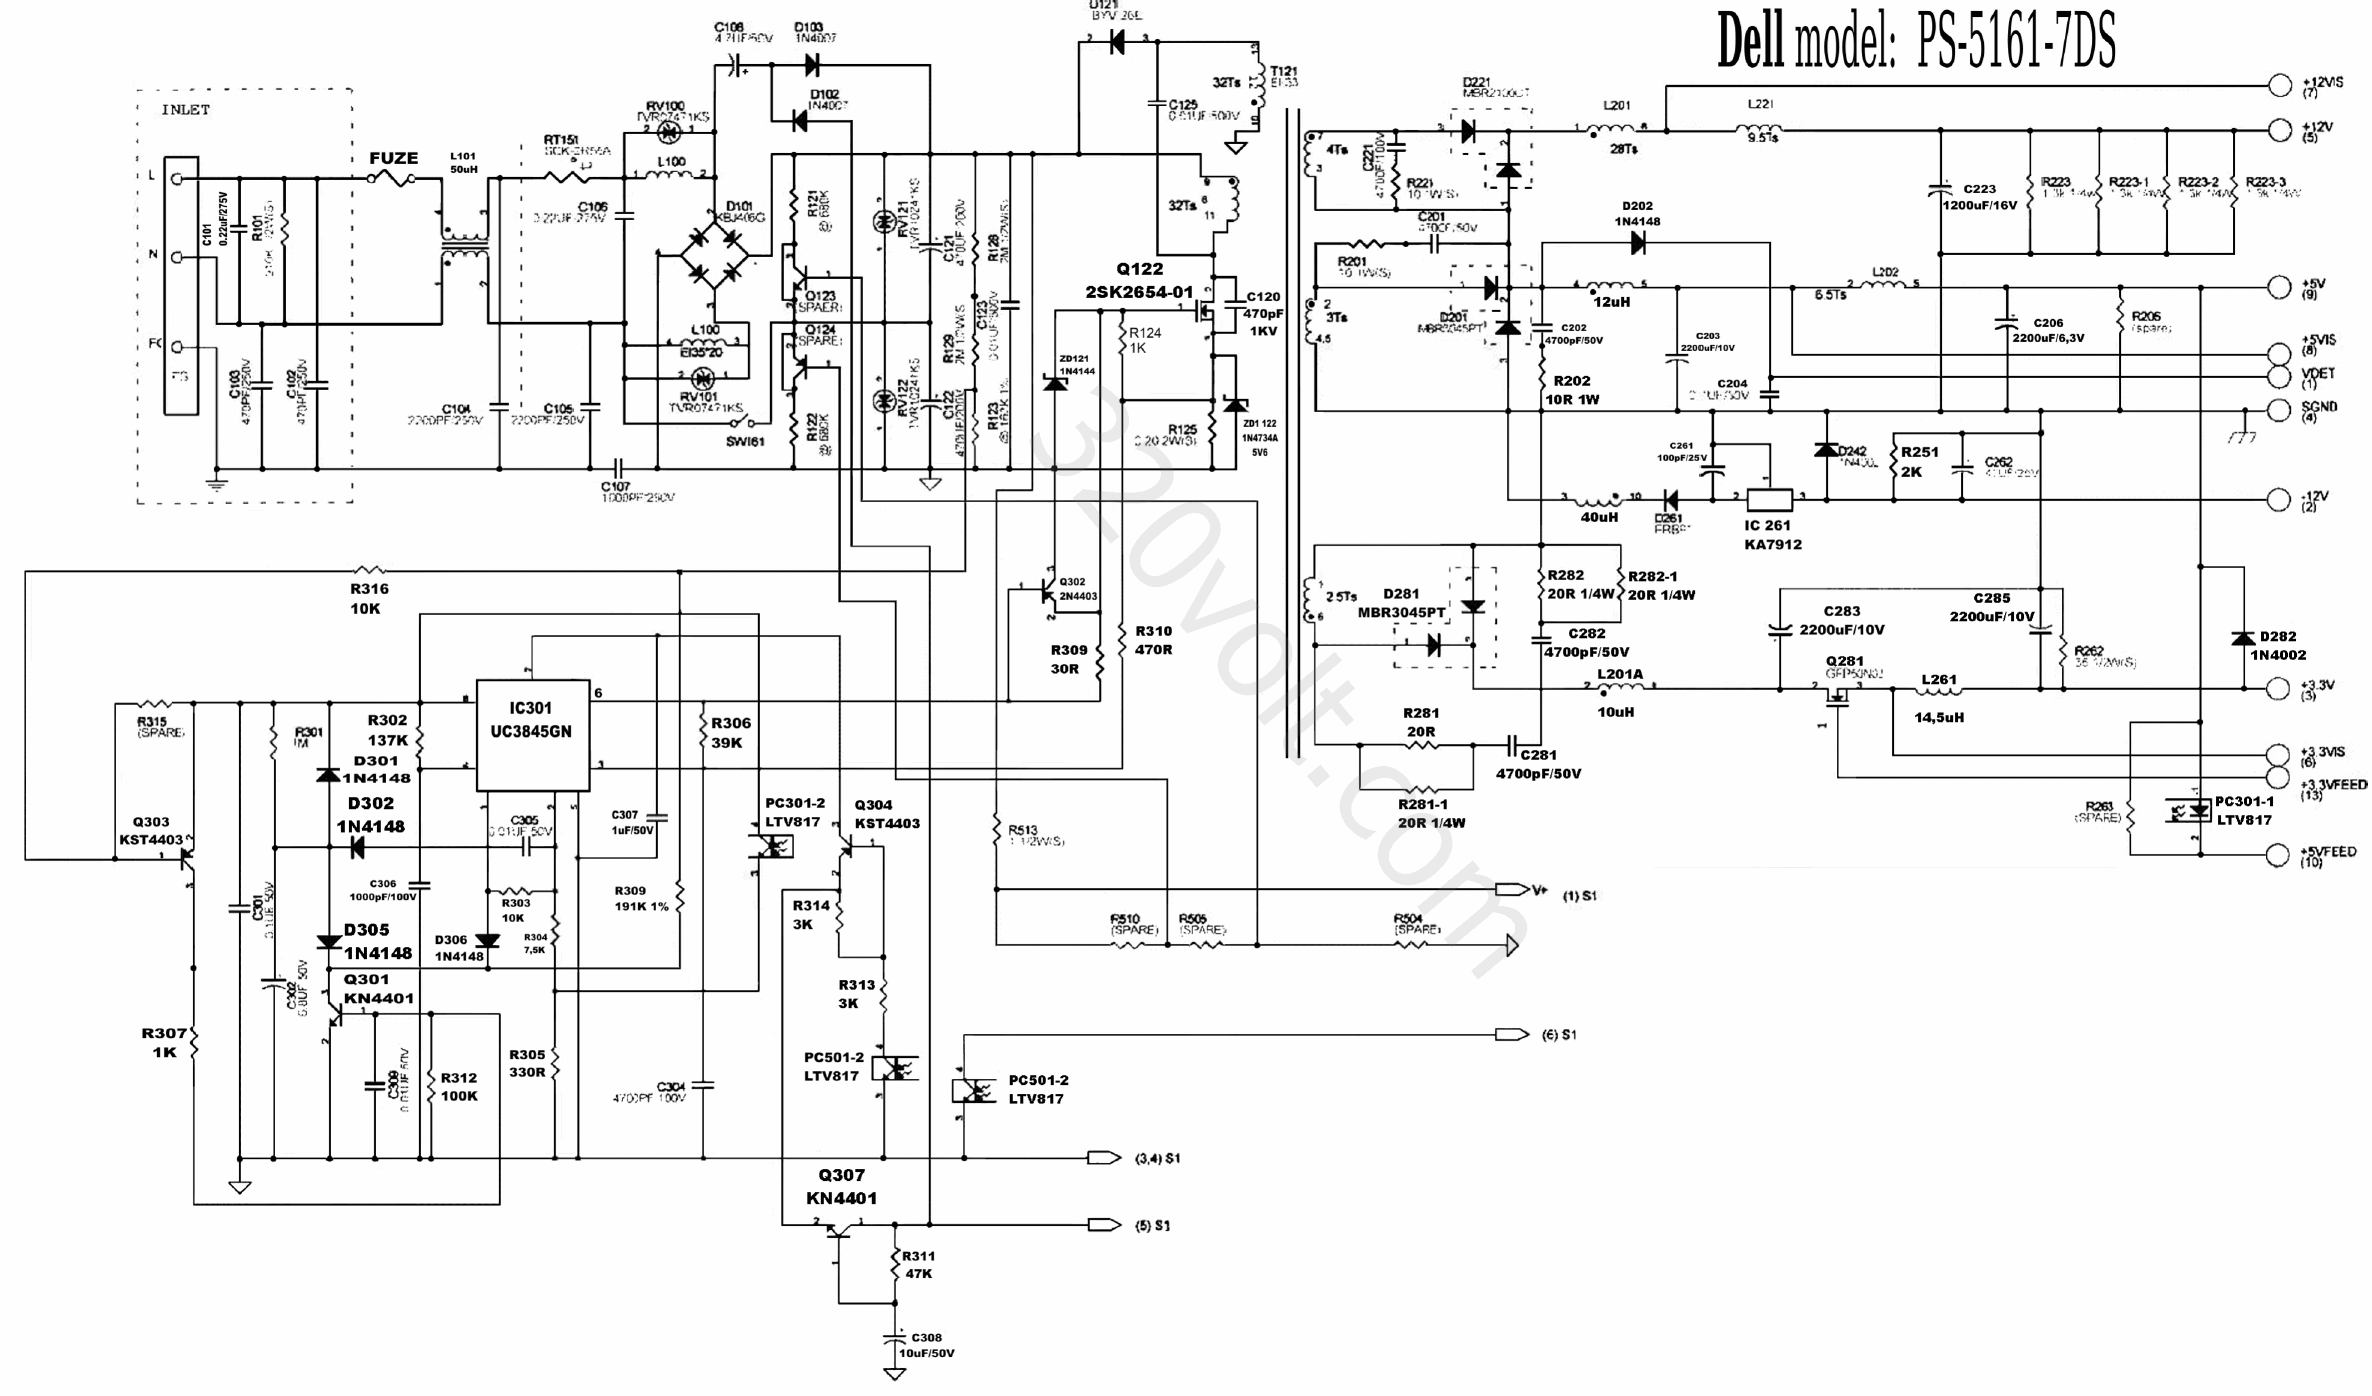 Atx Power Supply Schematic together with S atx en furthermore 2004 Acura Tl Electronic Throttle Control System Diagram further Motherboard Power Supply Circuit Diagram furthermore Simple 12 Volt To 9 Volt Dc Dc Converter. on 200w atx power supply circuit